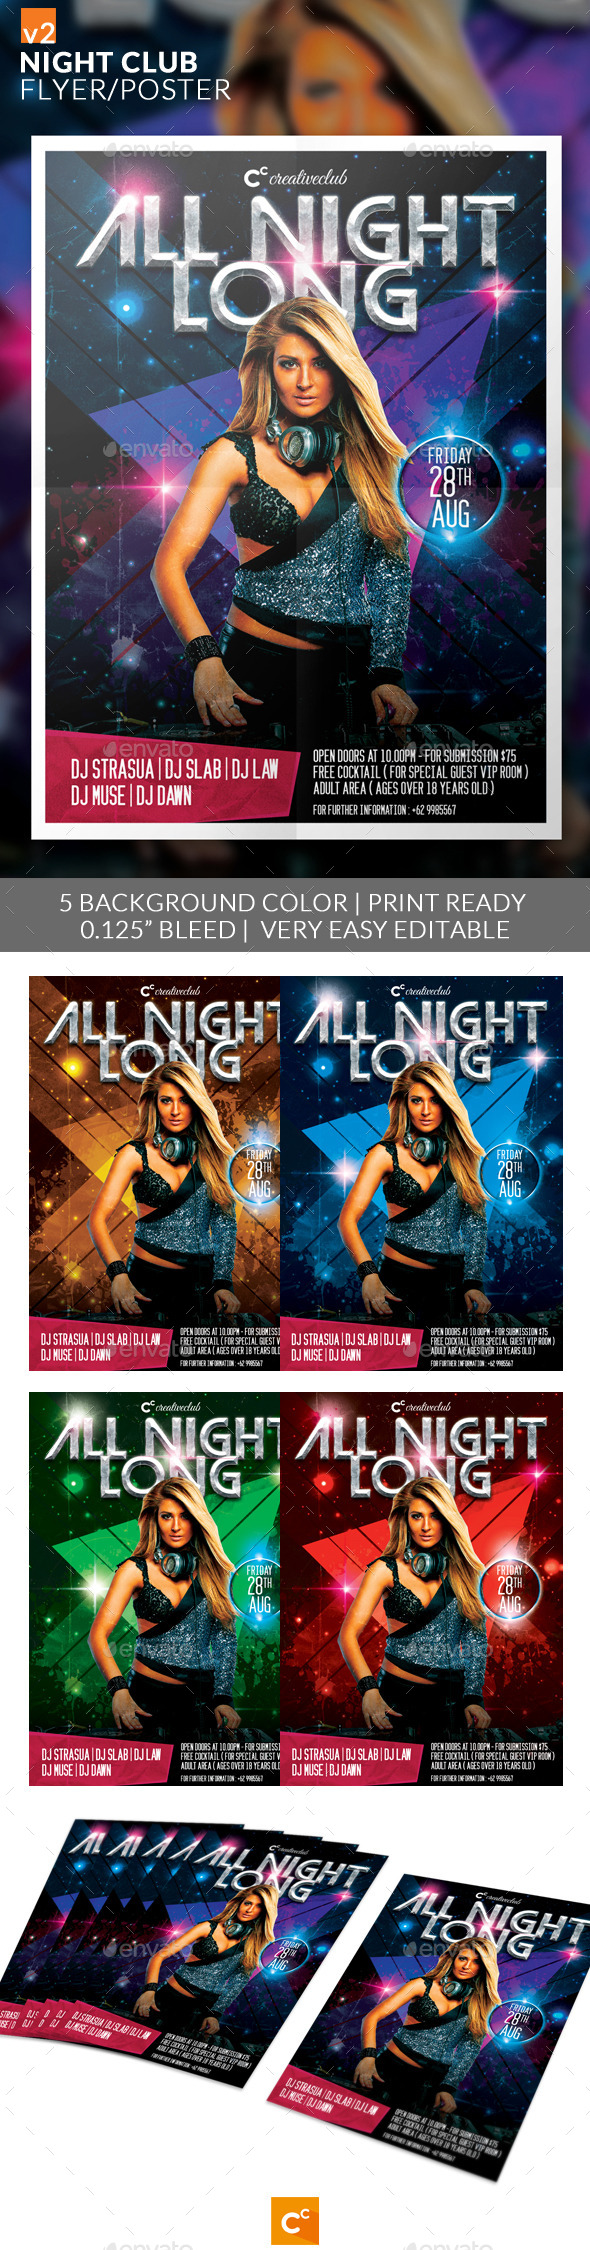 Night Club Flyer/Poster v2 - Clubs & Parties Events